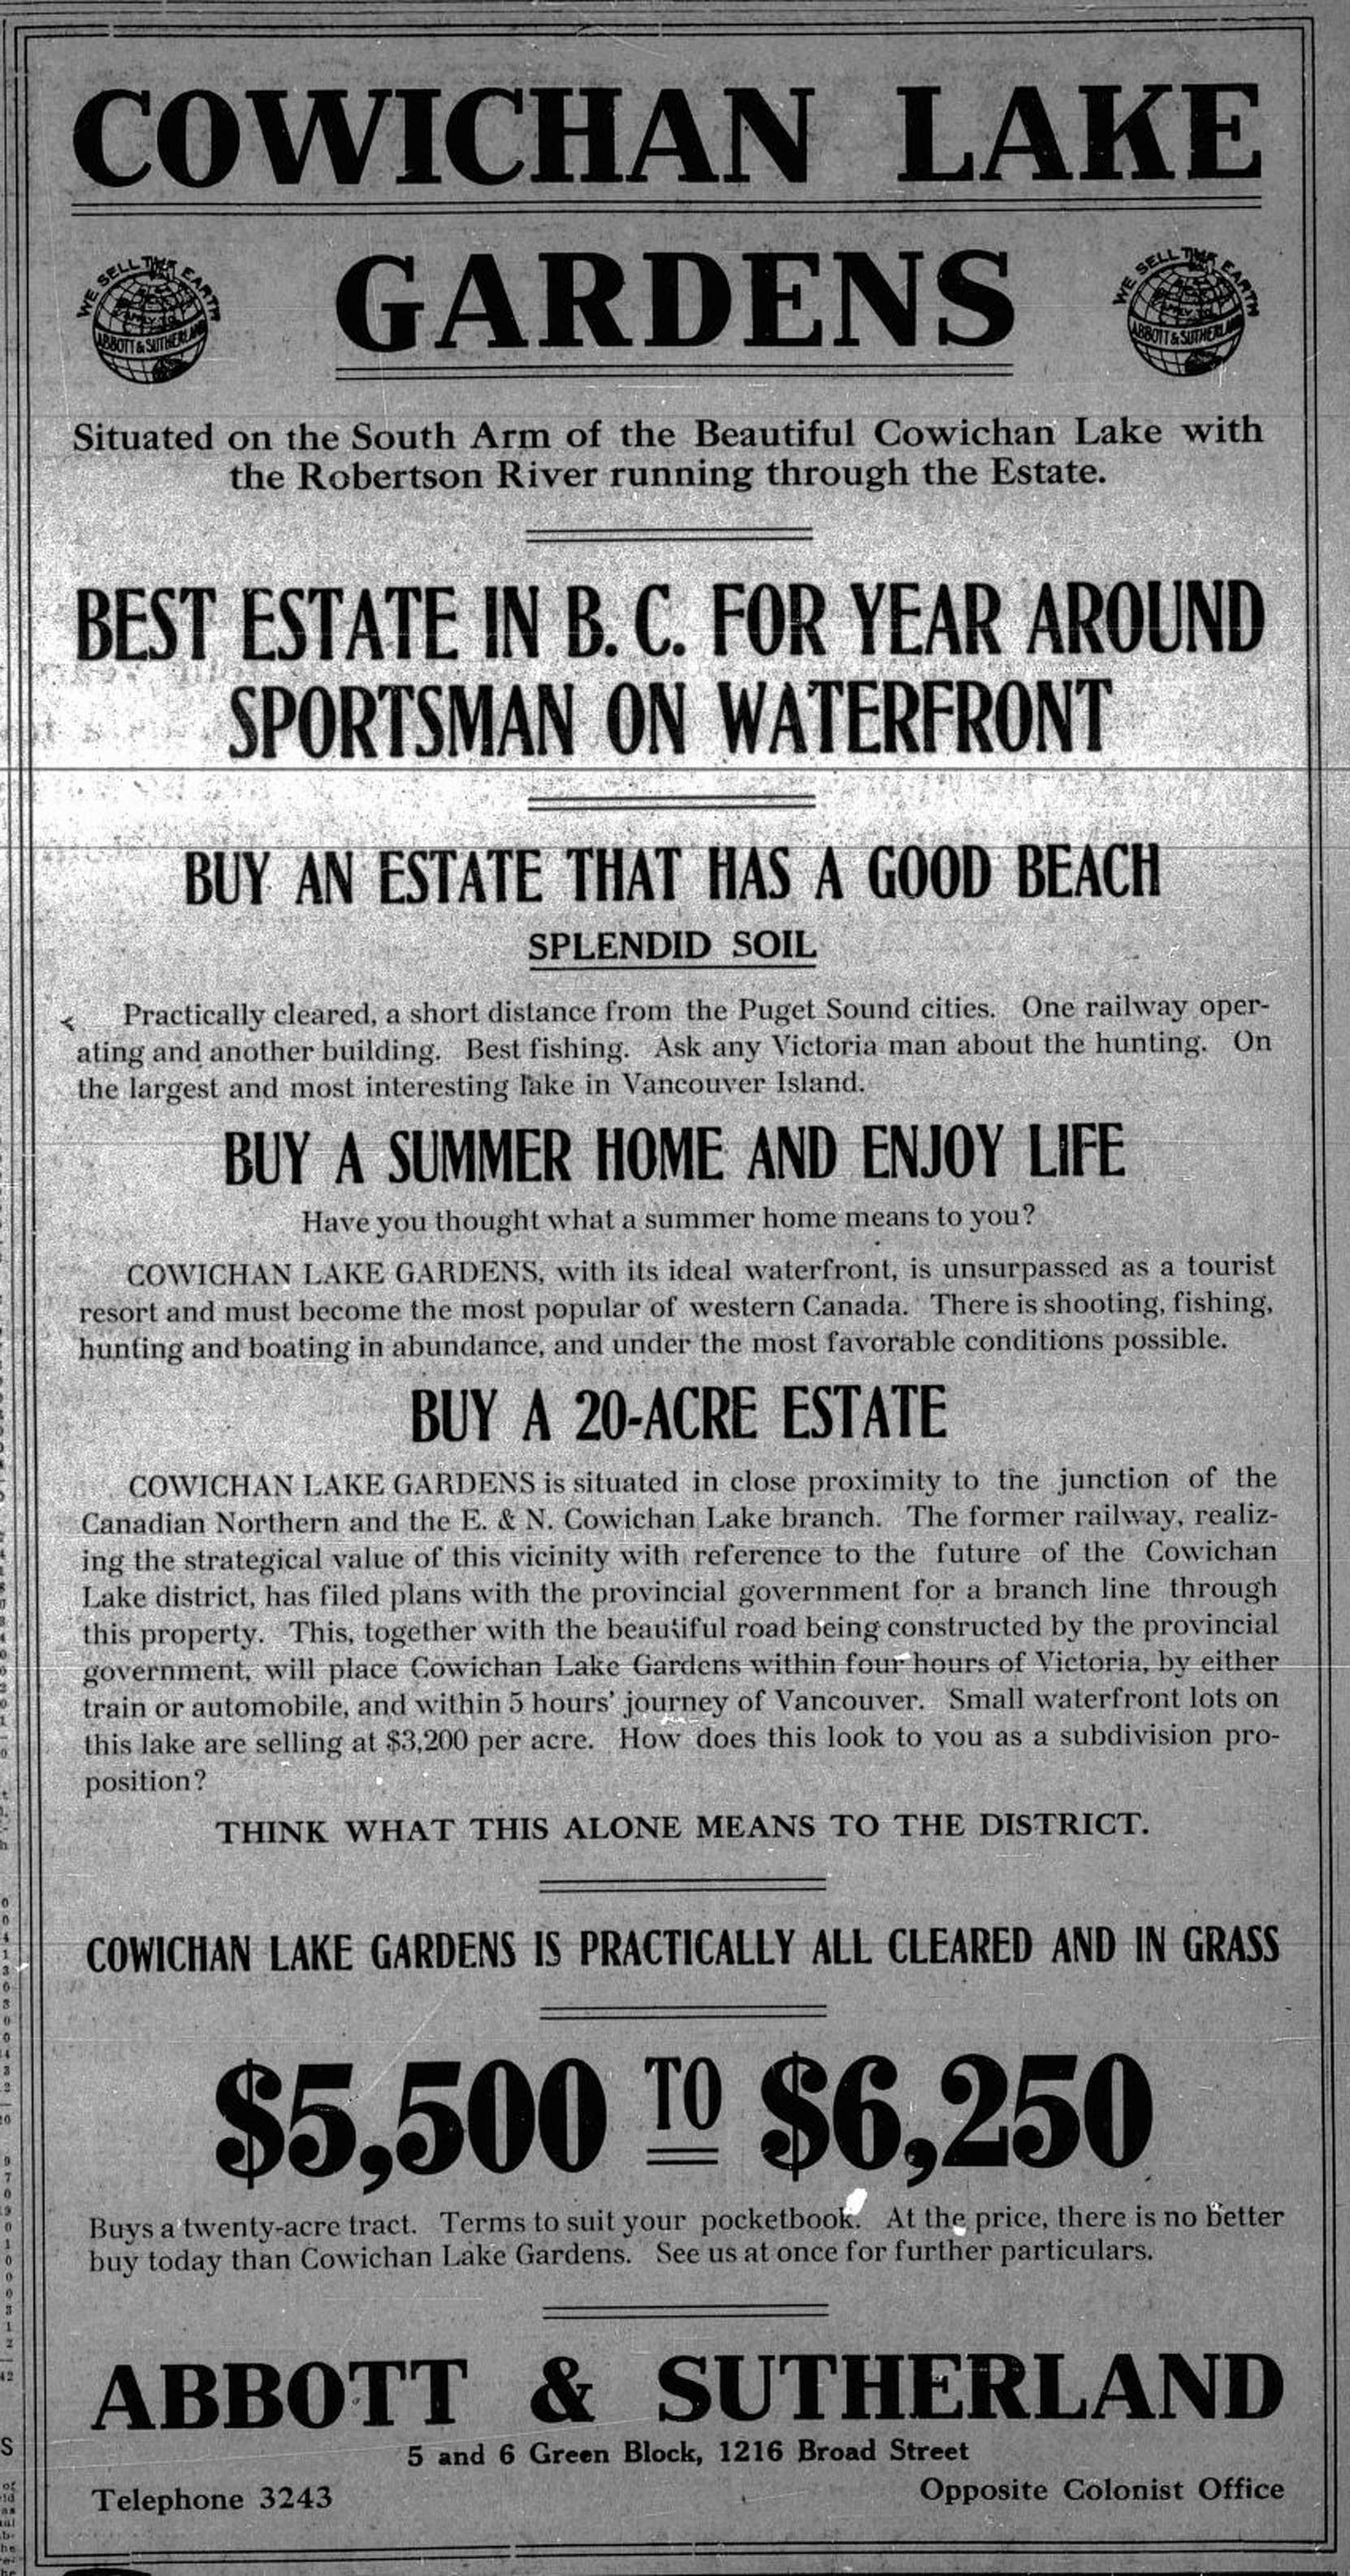 1912 advertisement for the Cowichan Lake Gardens subdivision in Lake Cowichan (Duncan Sightseeing collection)